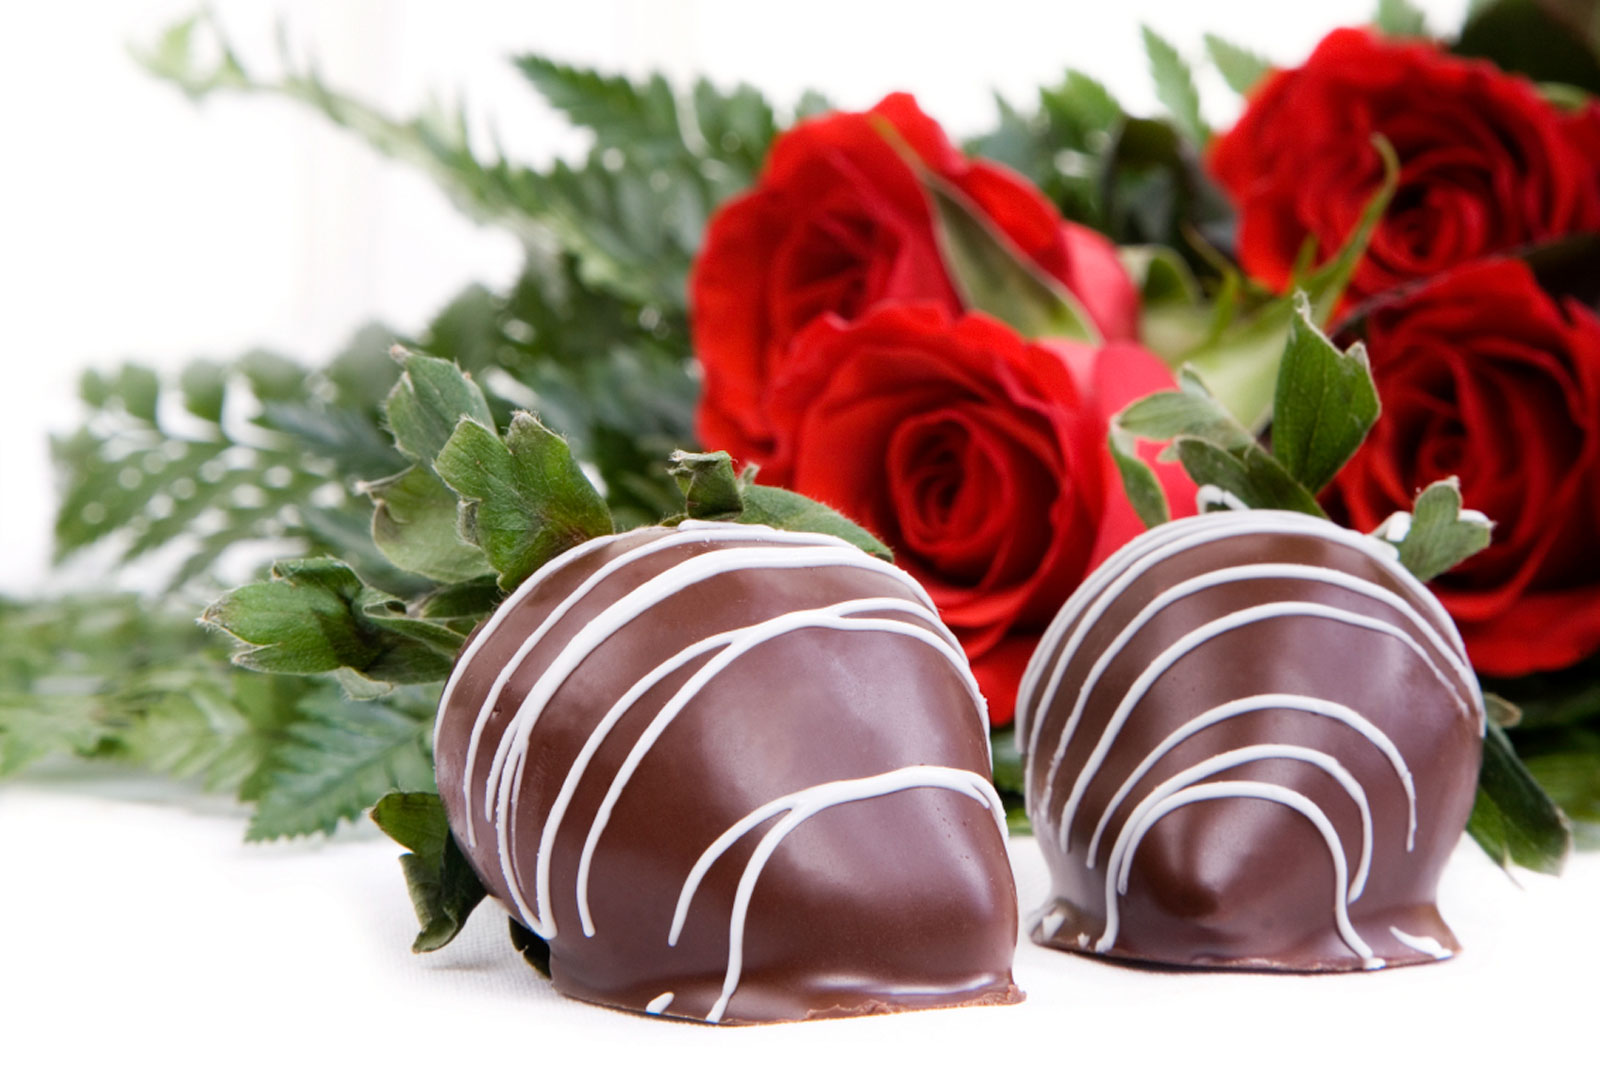 Chocolate Dipped Strawberries And Roses